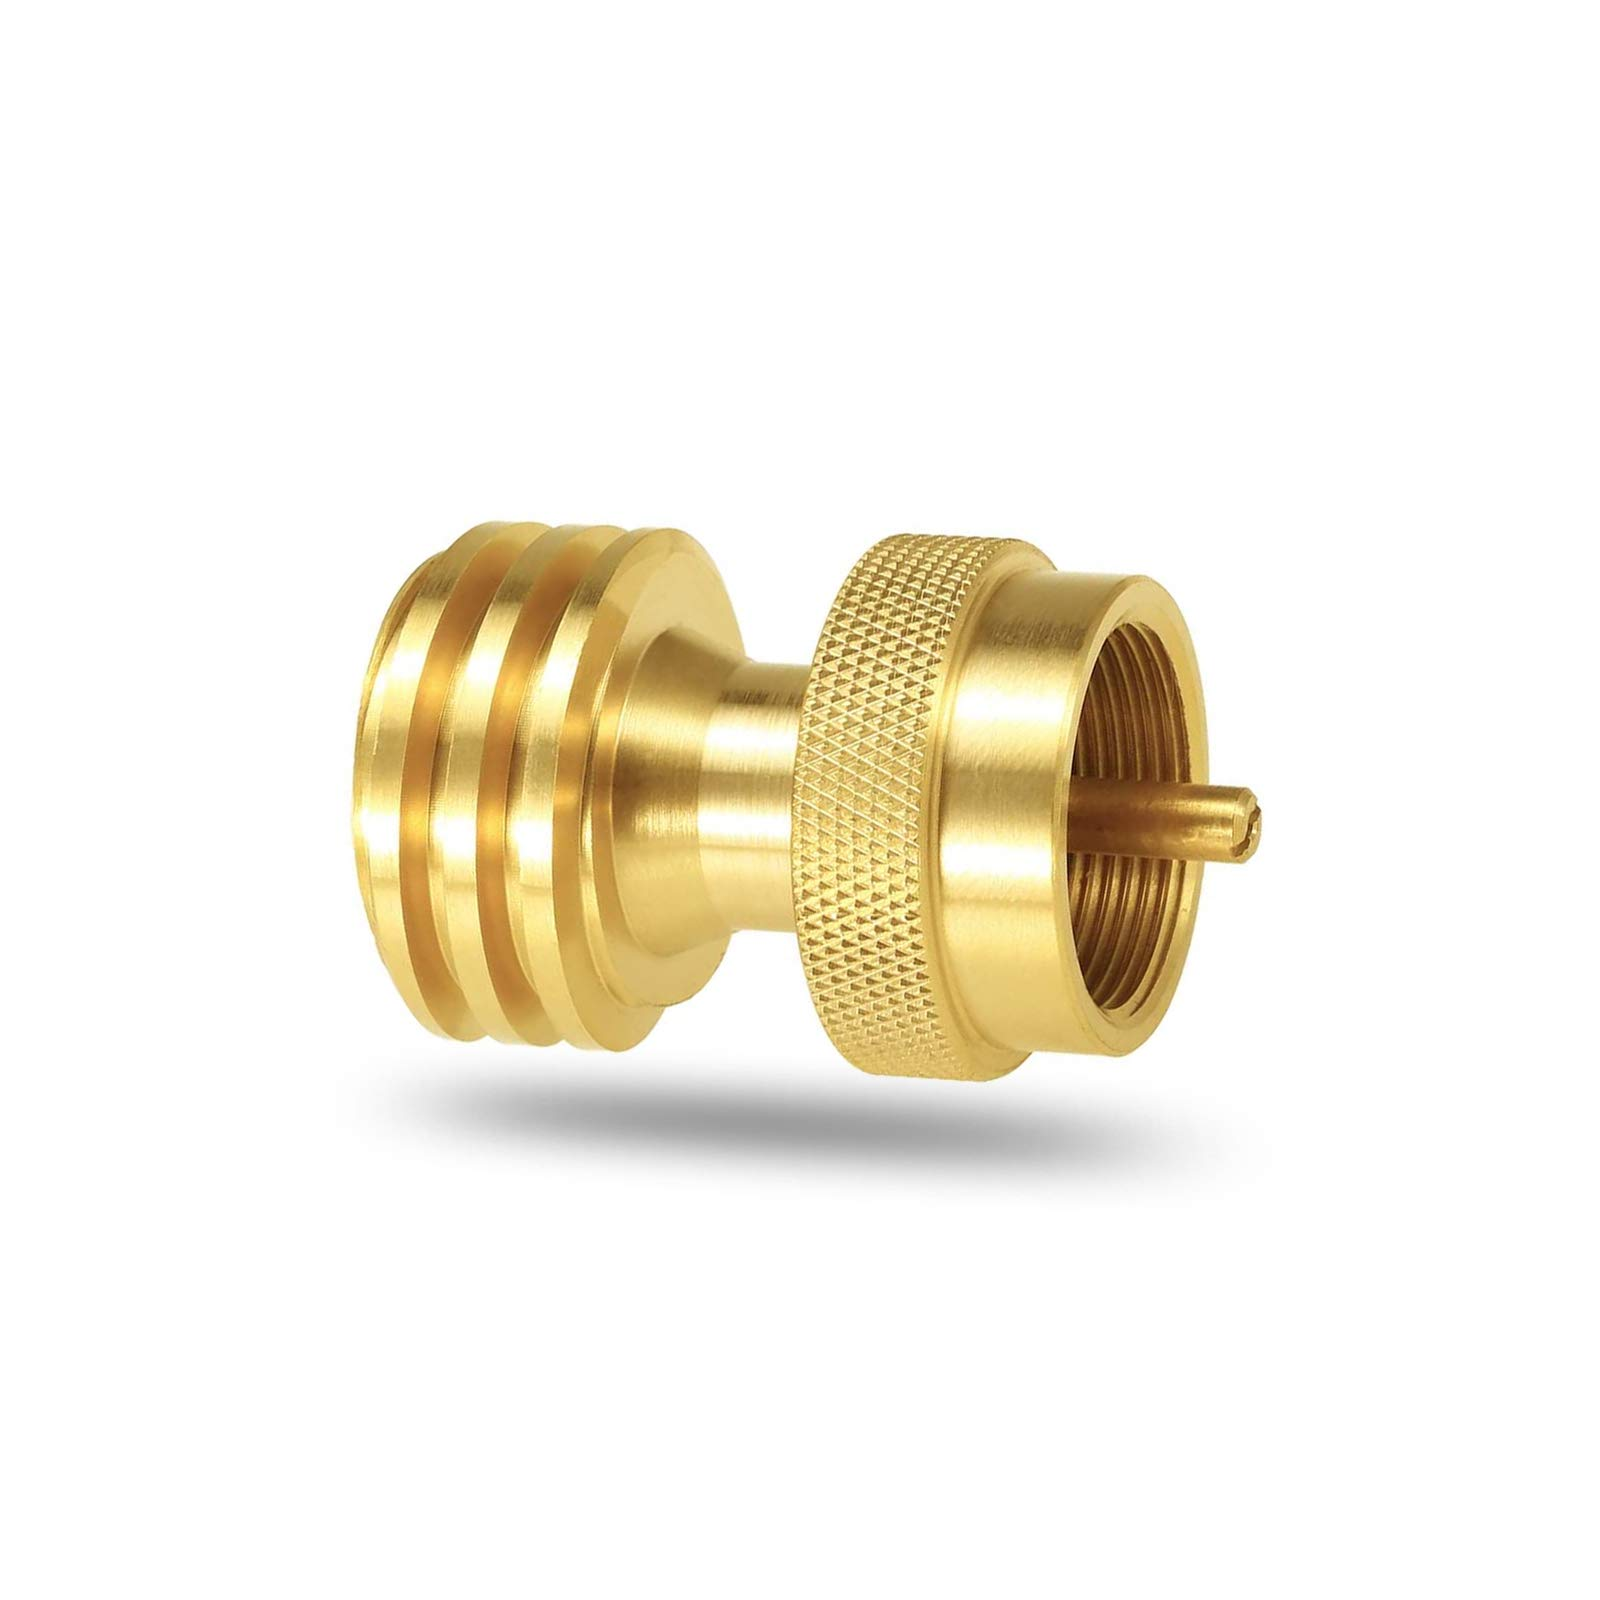 Uniflasy Propane Tank Adapter for Disposable Throwaway Cylinder Brass Saver Adapter 1 lb to 20 lb Round Propane Adapter Converter Universal Small Bottle for Gas Grill and Propane Tree Cylinder Thread